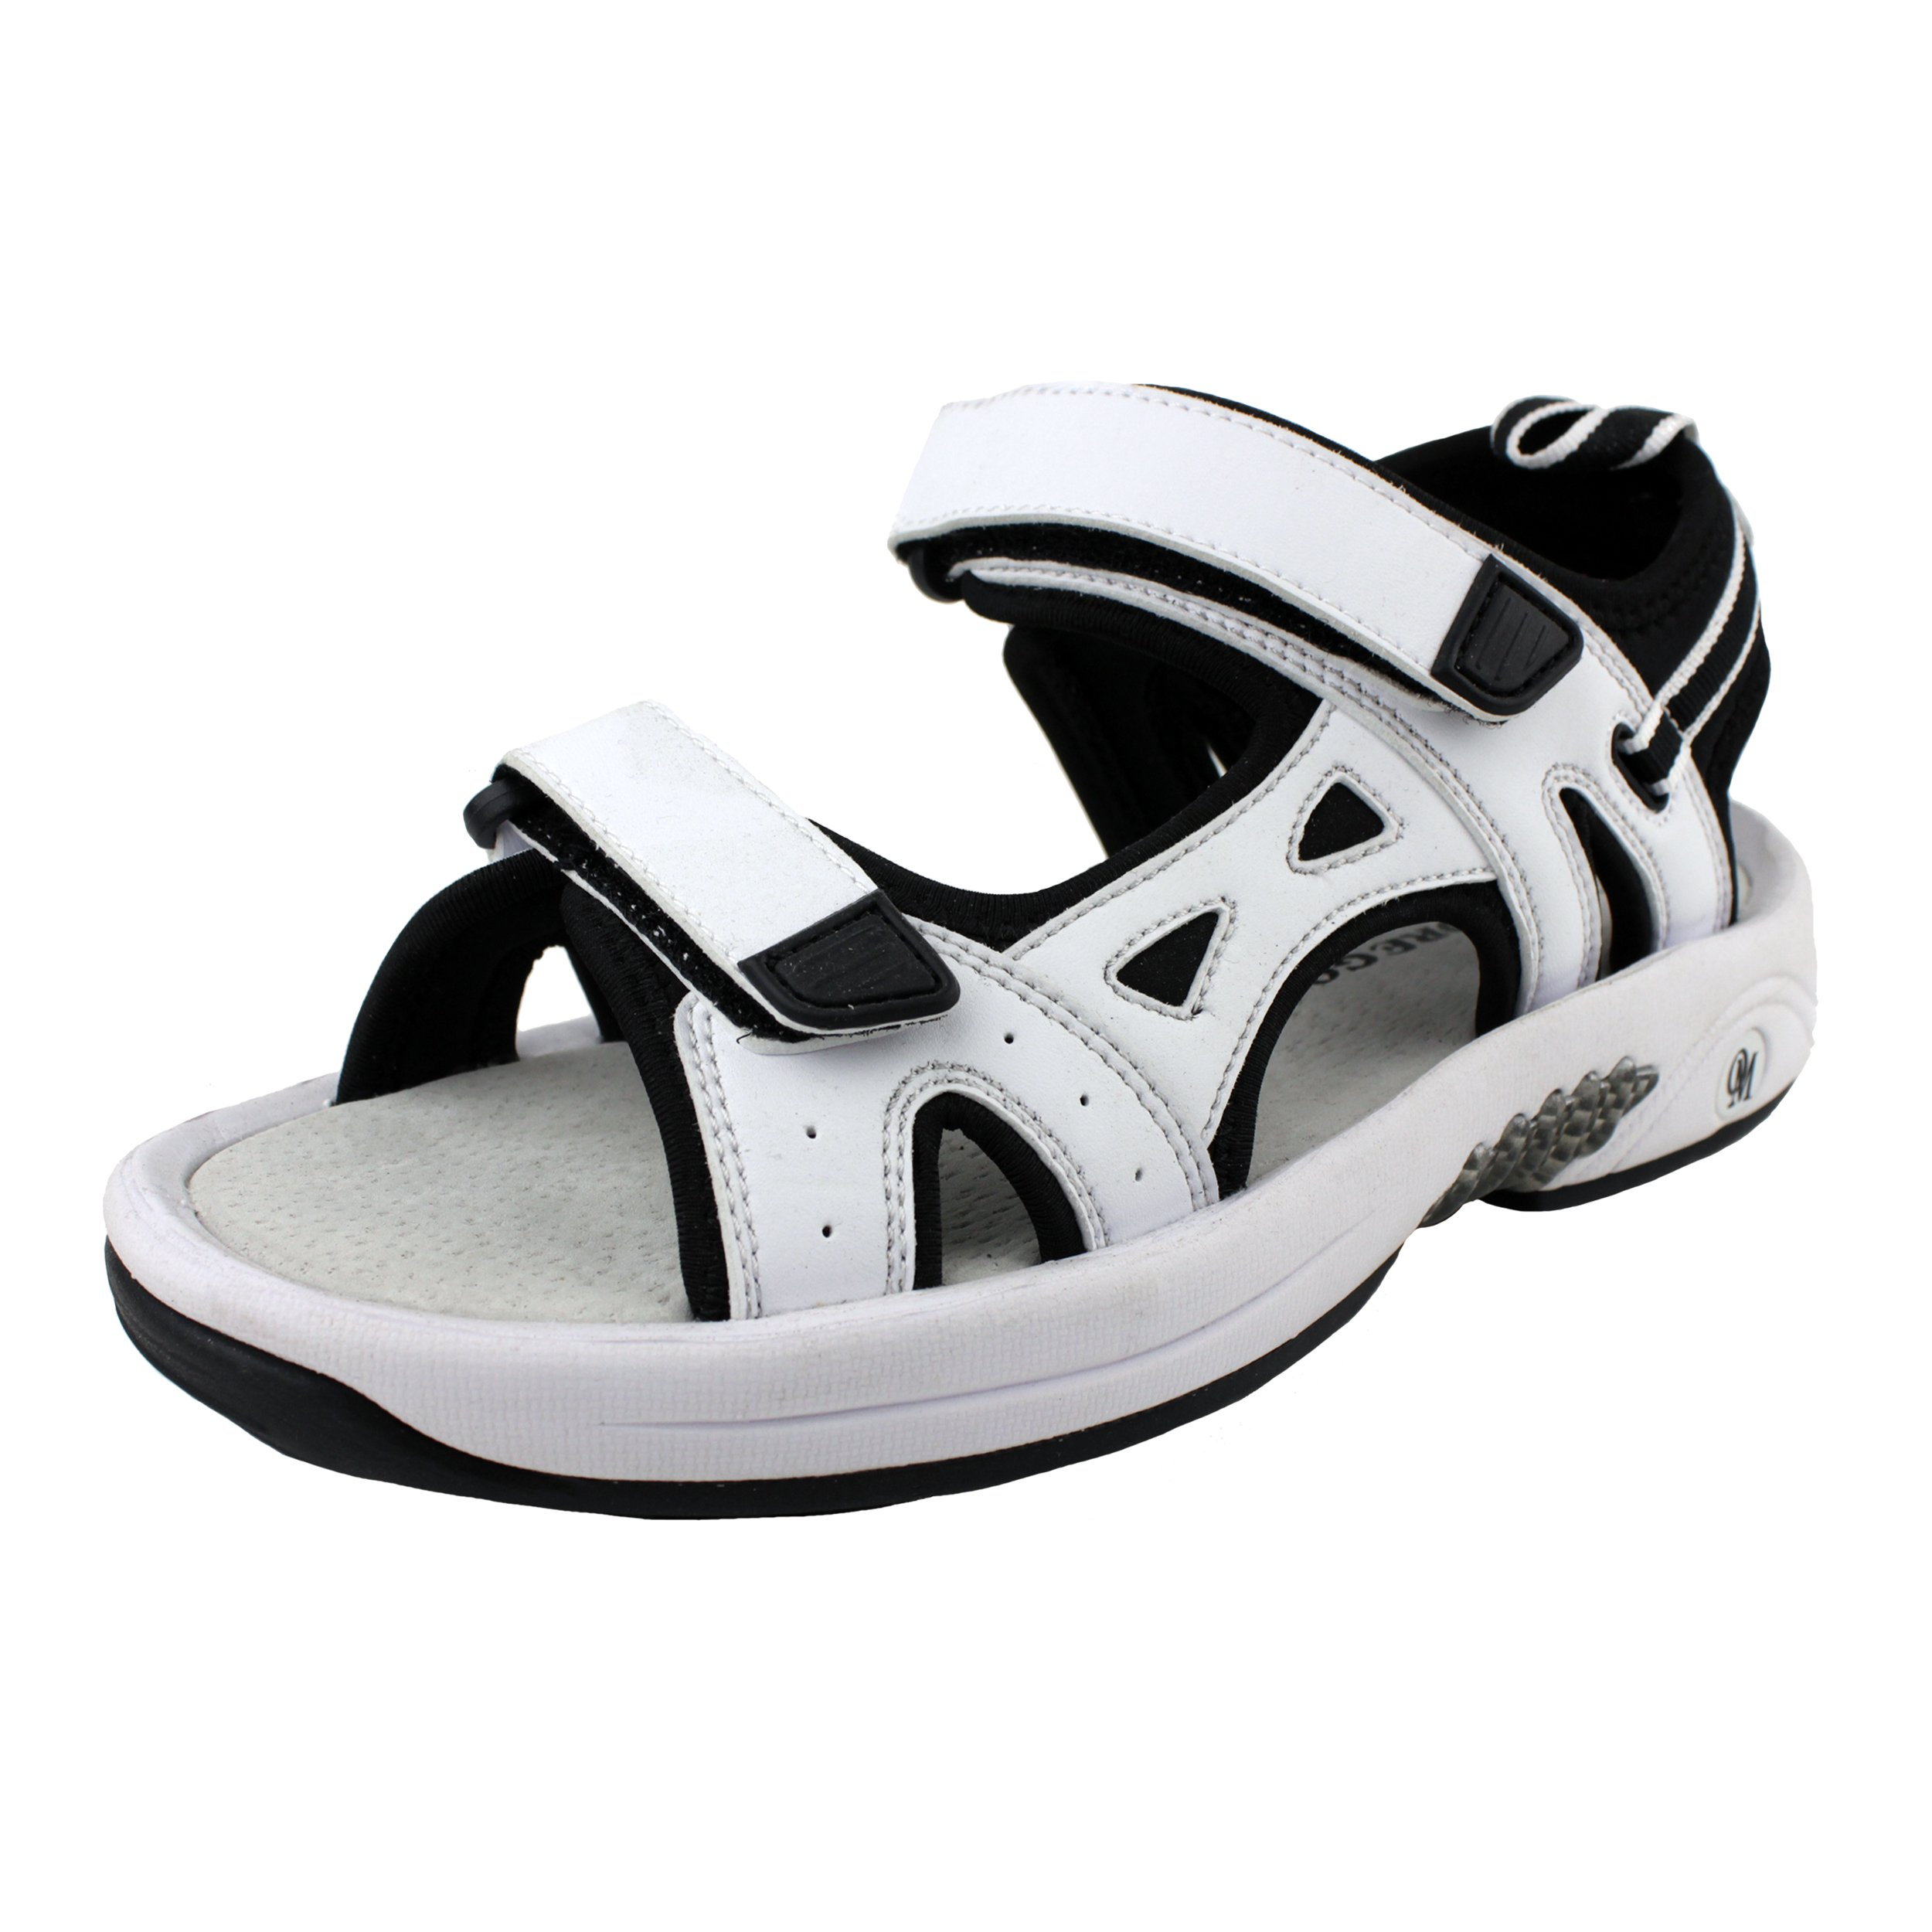 Oregon Mudders Women's WCS500S Golf Sandal with Spike Sole, US 7/ White